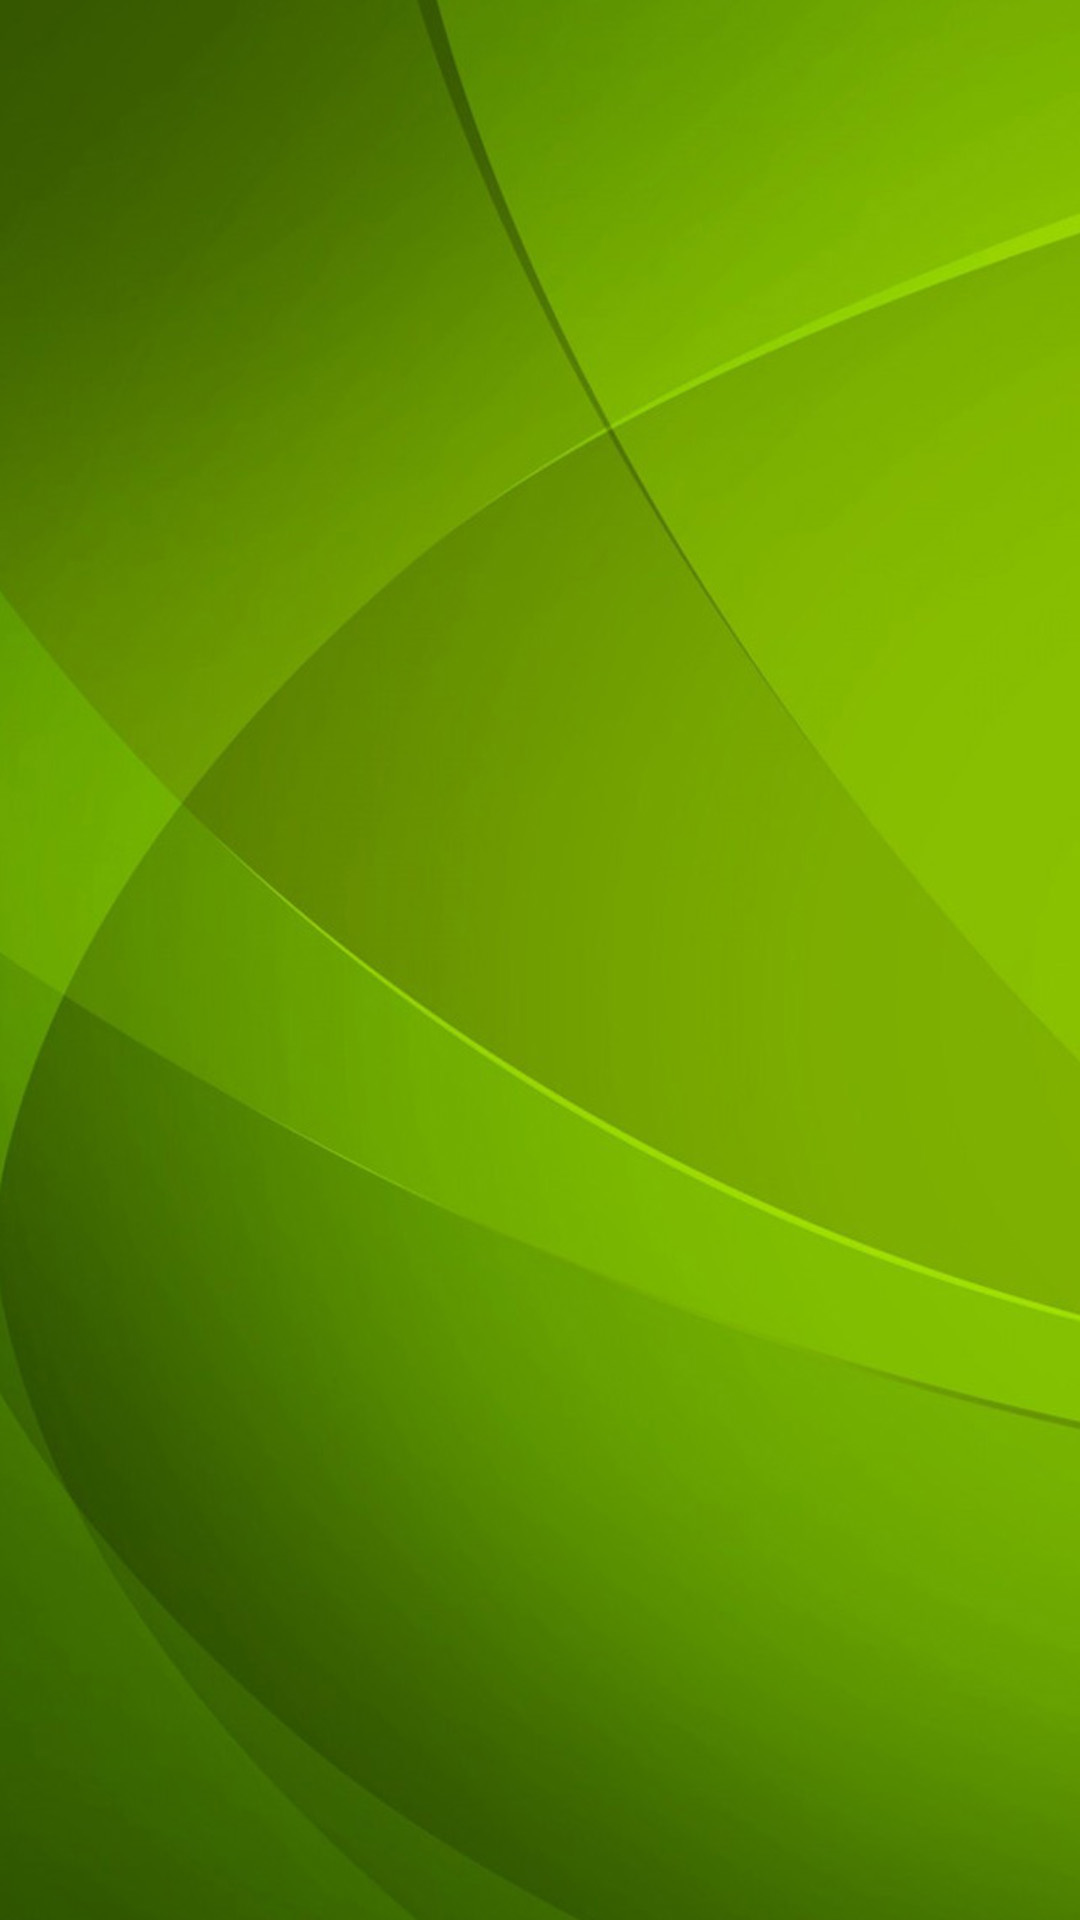 Colorful 63 Android wallpaper